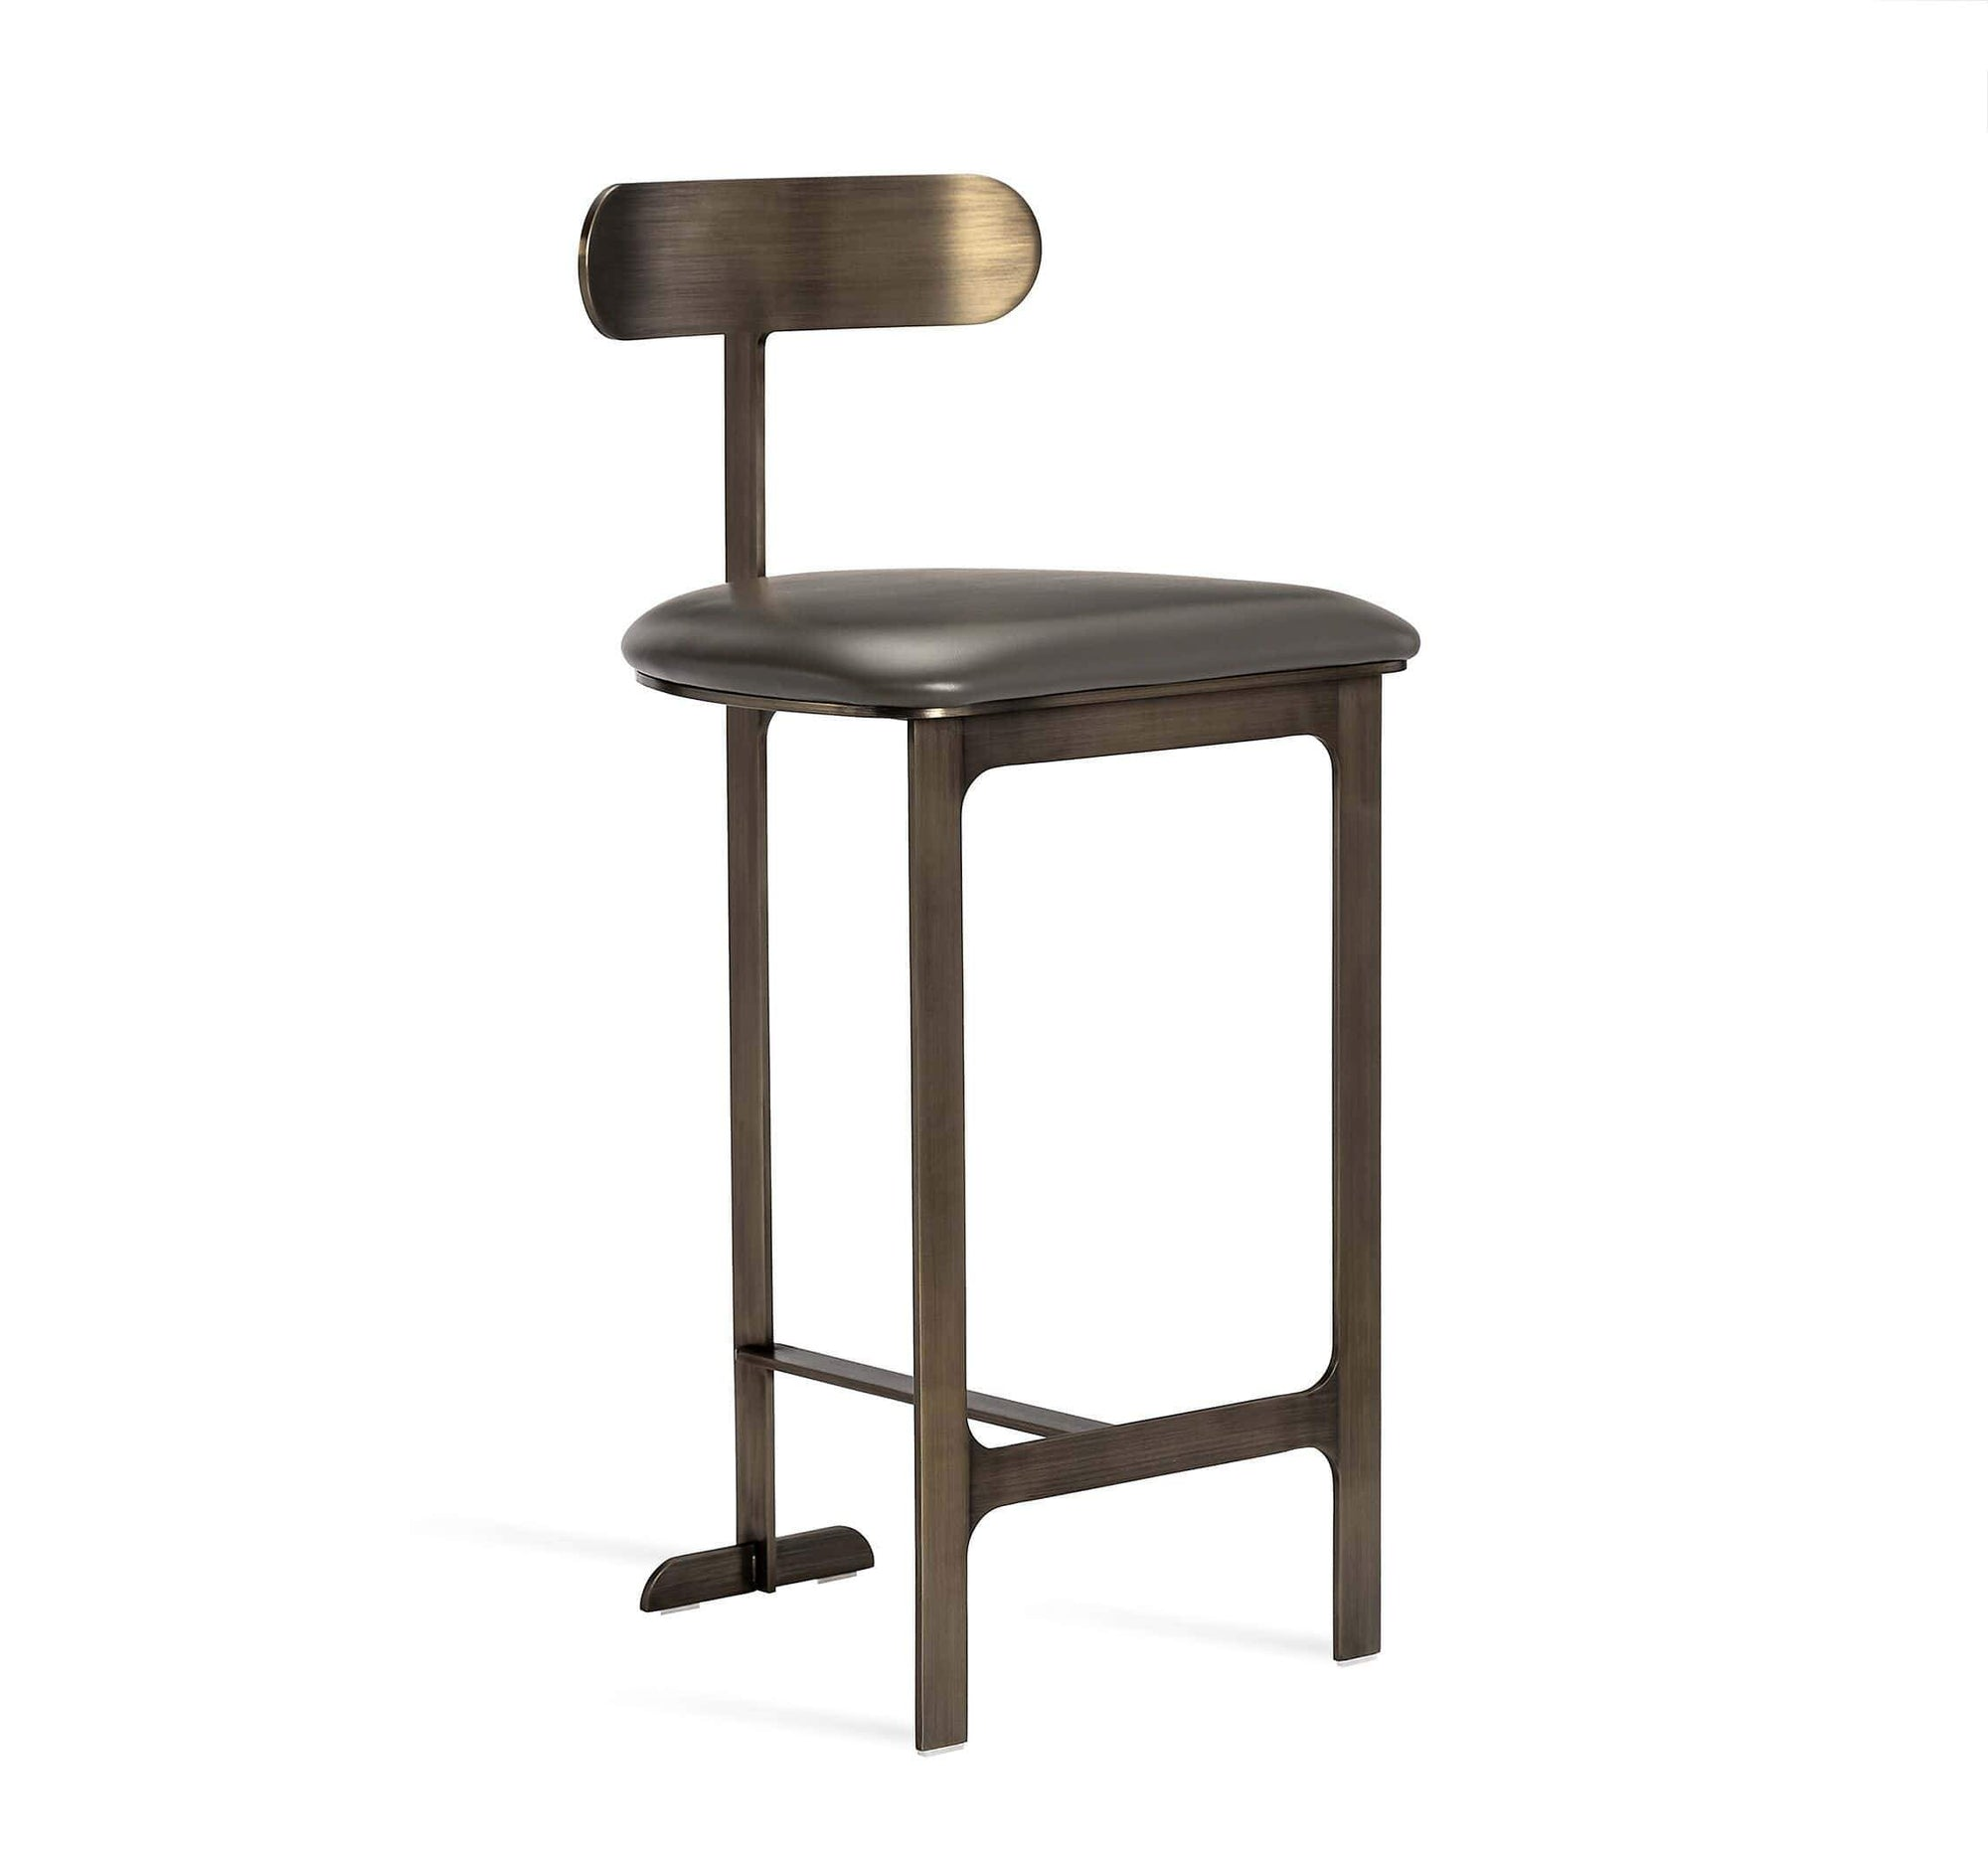 Interlude Home Interlude Home Hollis Counter Stool in Grey/ Bronze 148151